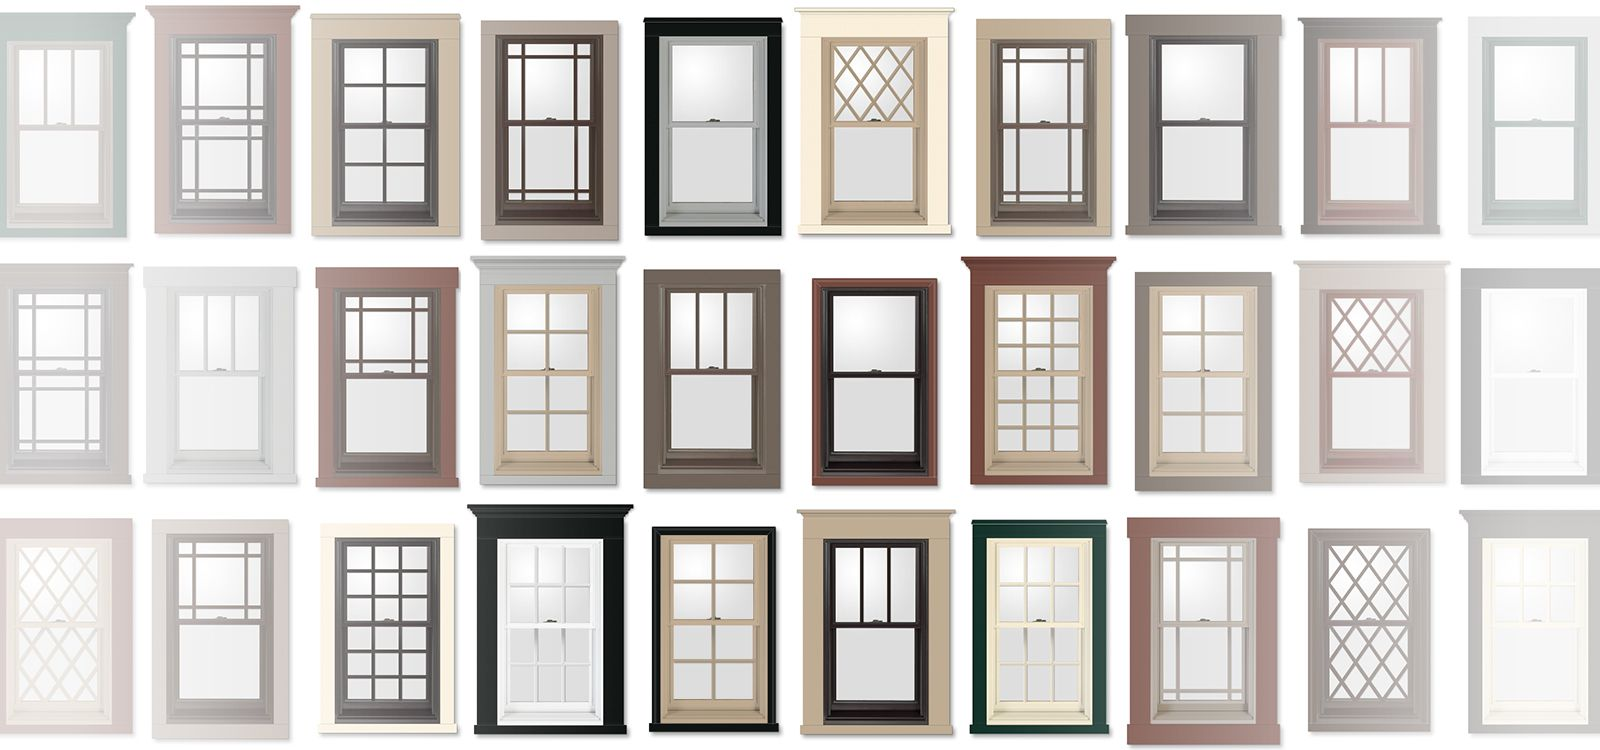 Andersen Windows And Patio Doors 1 In Quality And Used Most By Residential Builders And